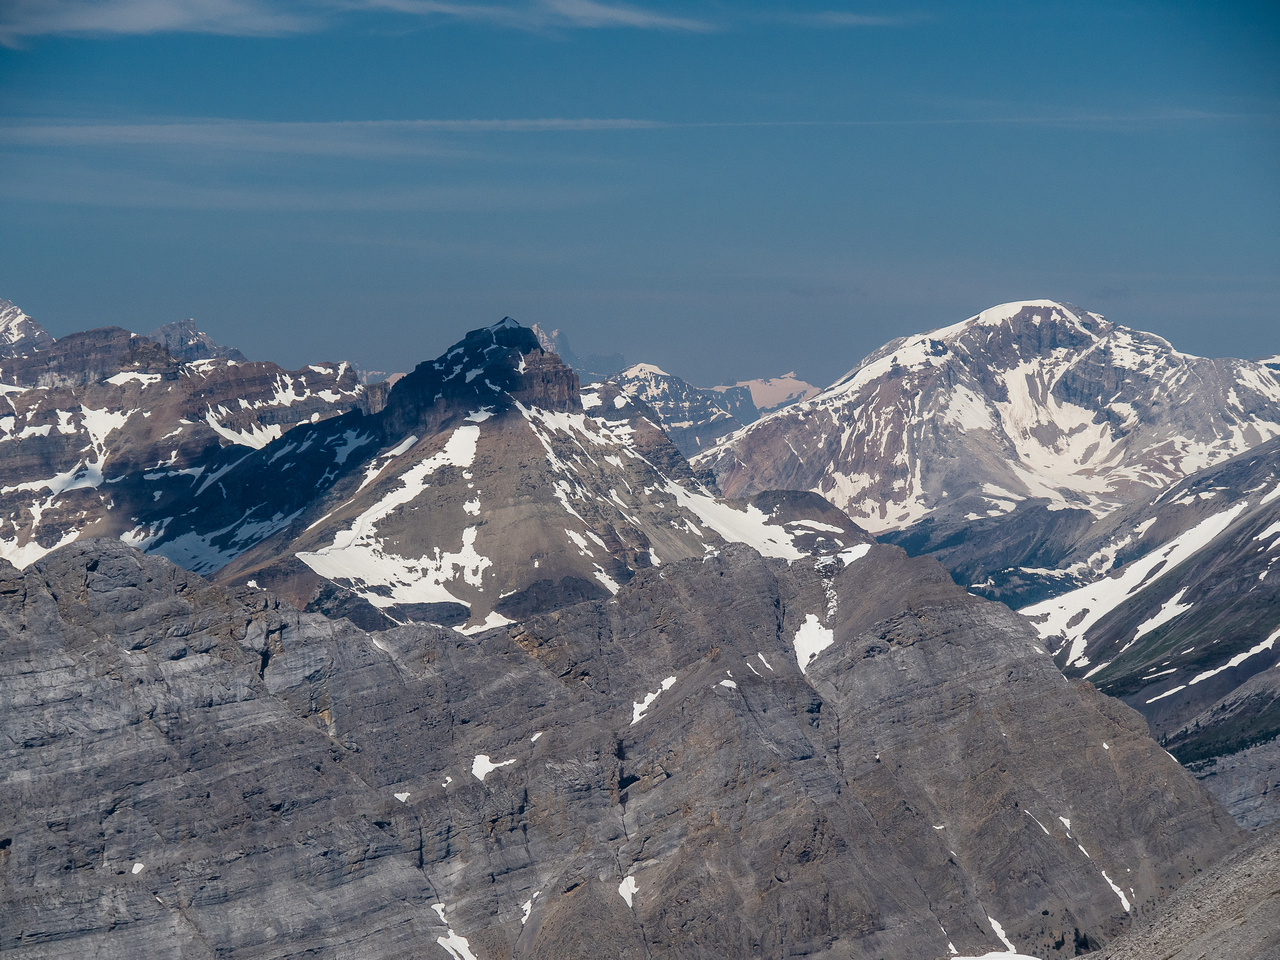 The Towers at left with Nestor Peak rising to the right in the background.